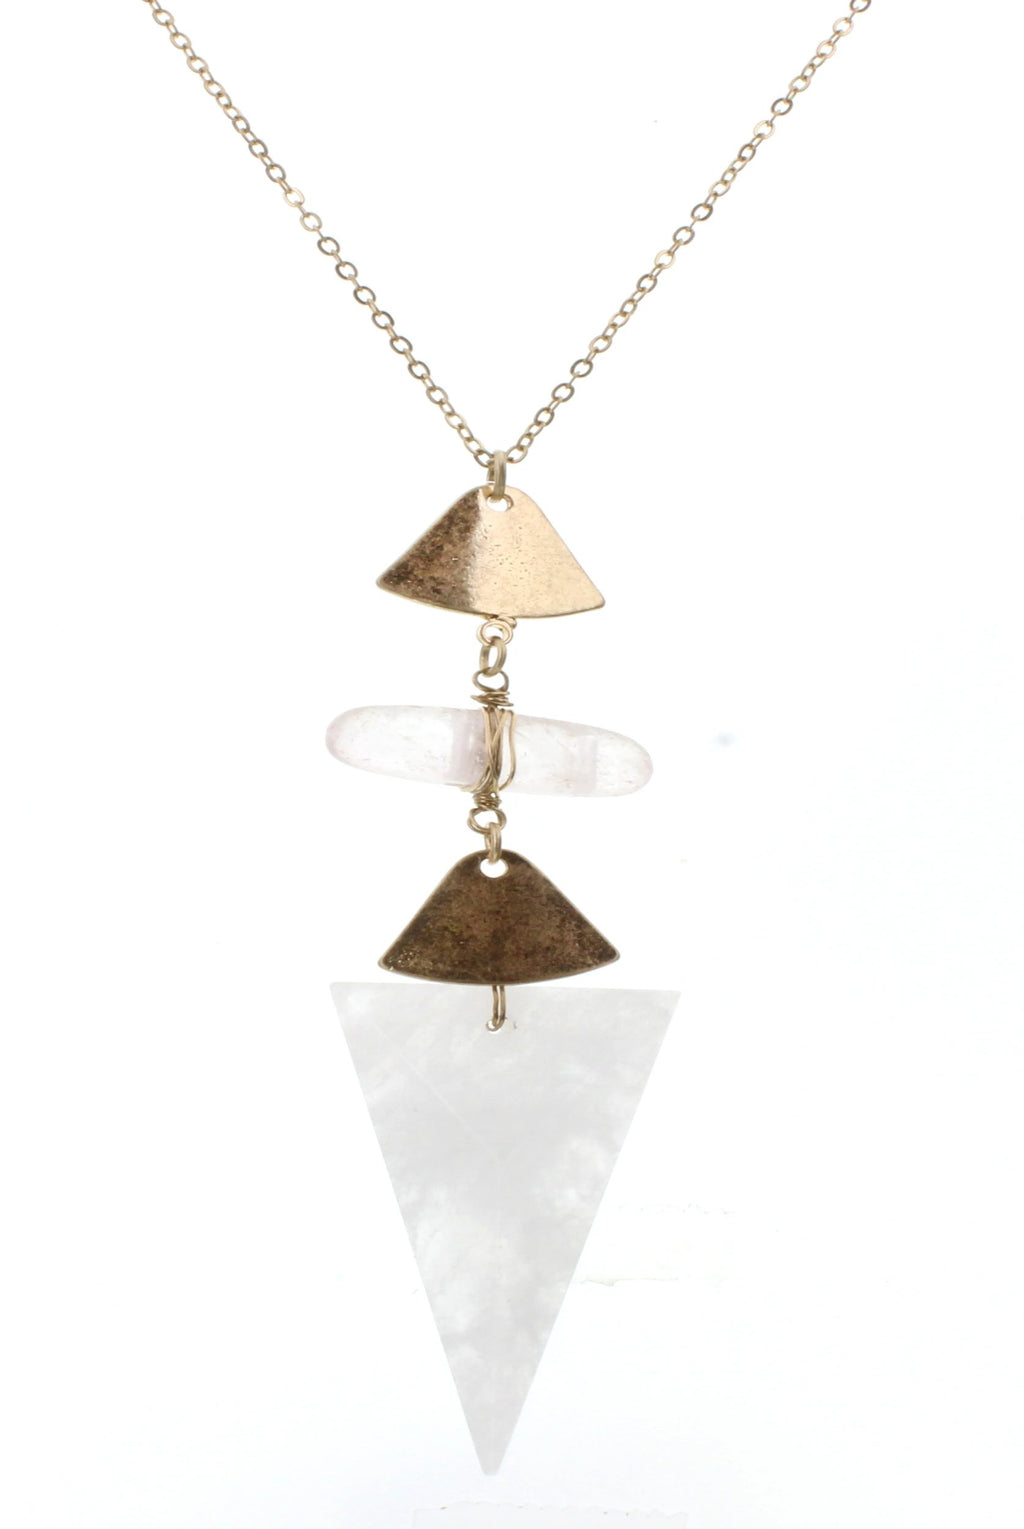 JM Briley Clear Stone With Triangle Pendant Necklace - Free Souls Boutique